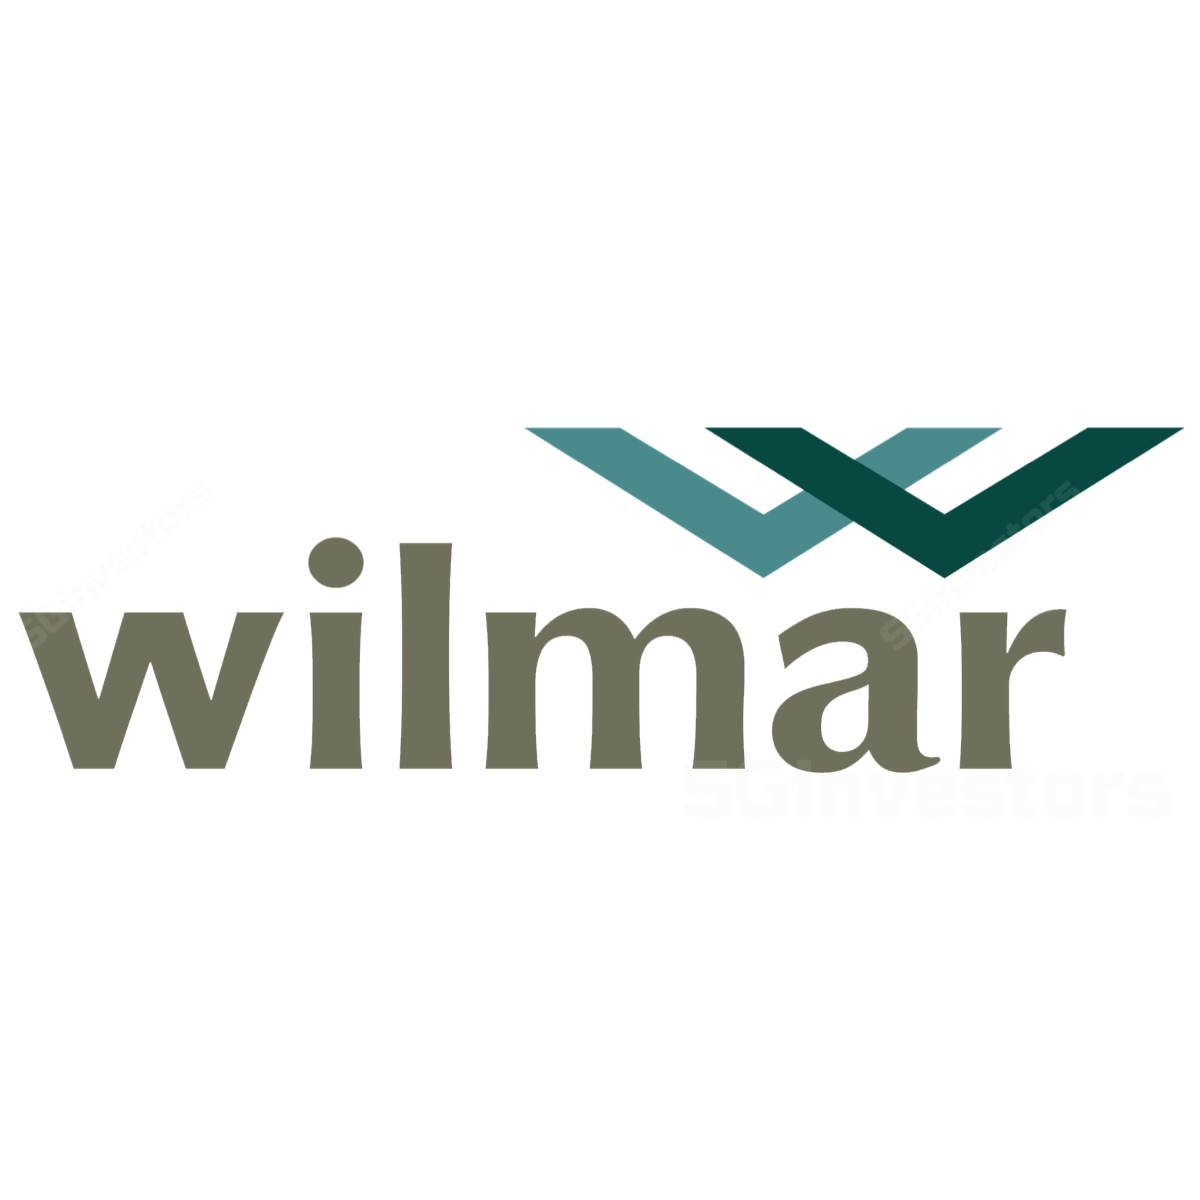 Wilmar International - DBS Vickers 2017-02-21: On the rebound